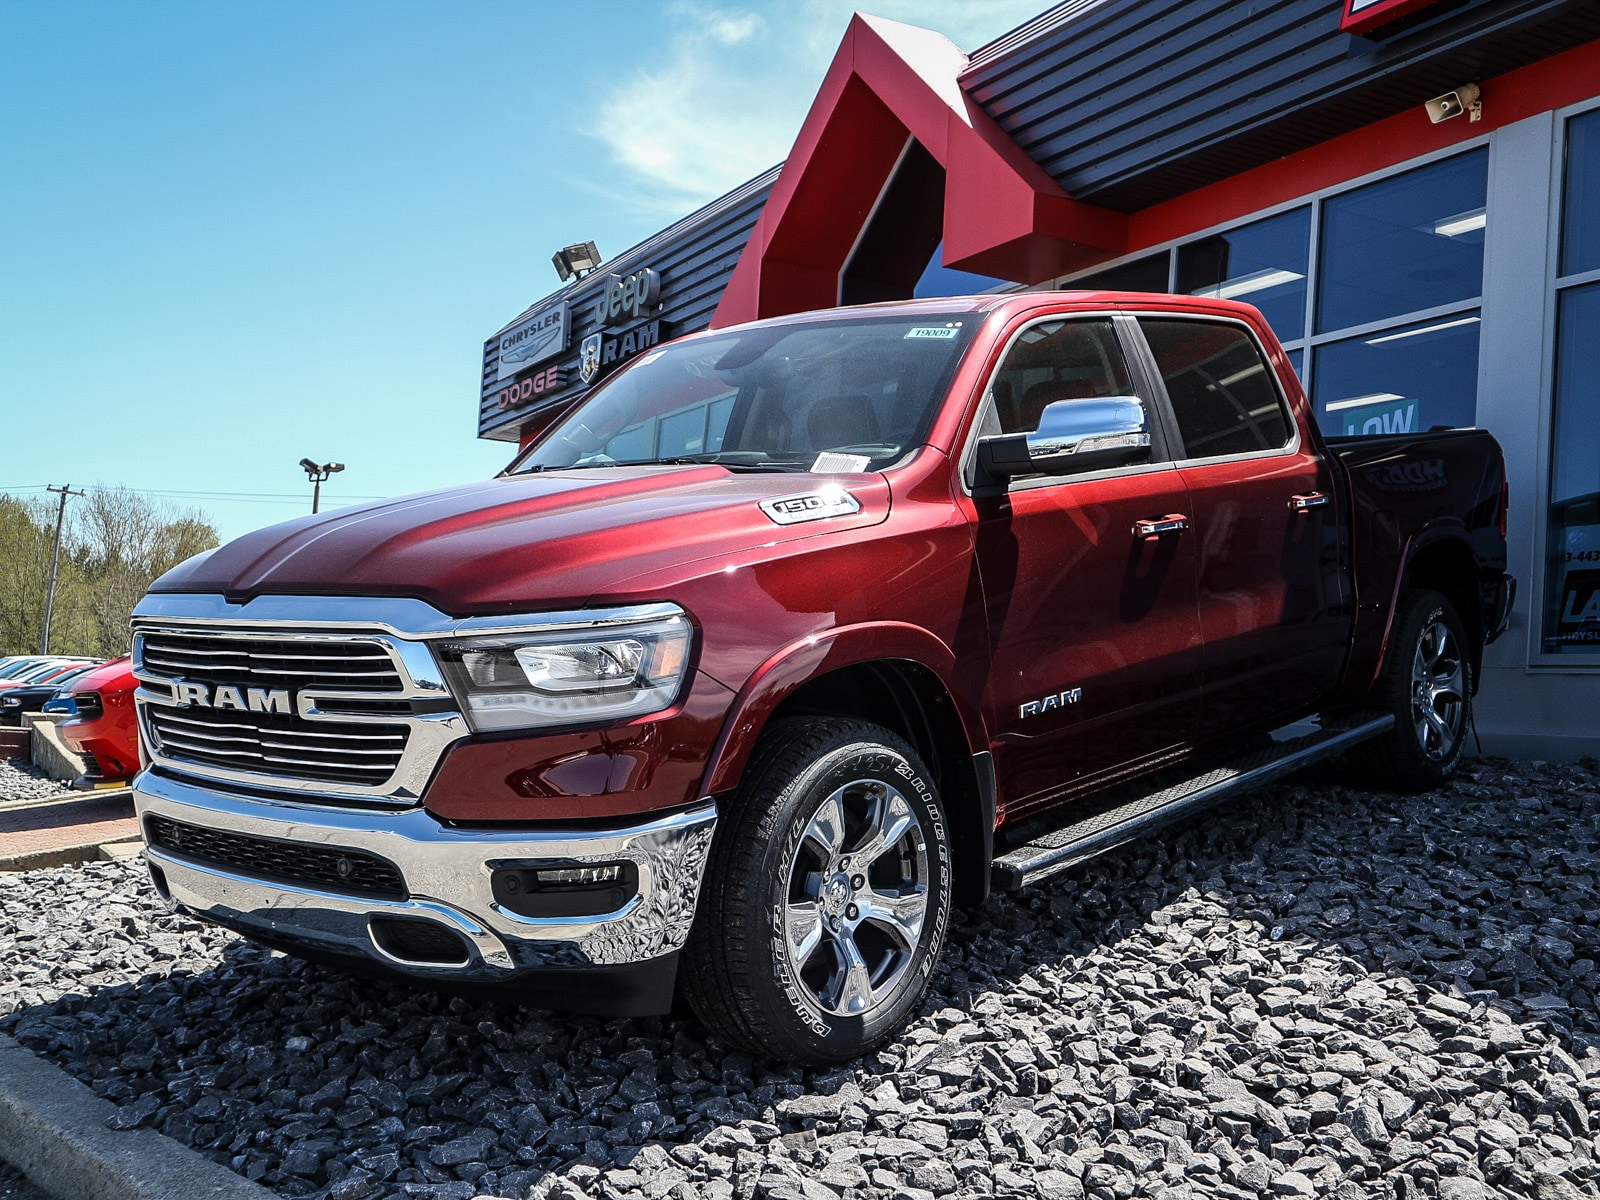 2019 Ram All-New 1500 Laramie Pickup Truck 19009